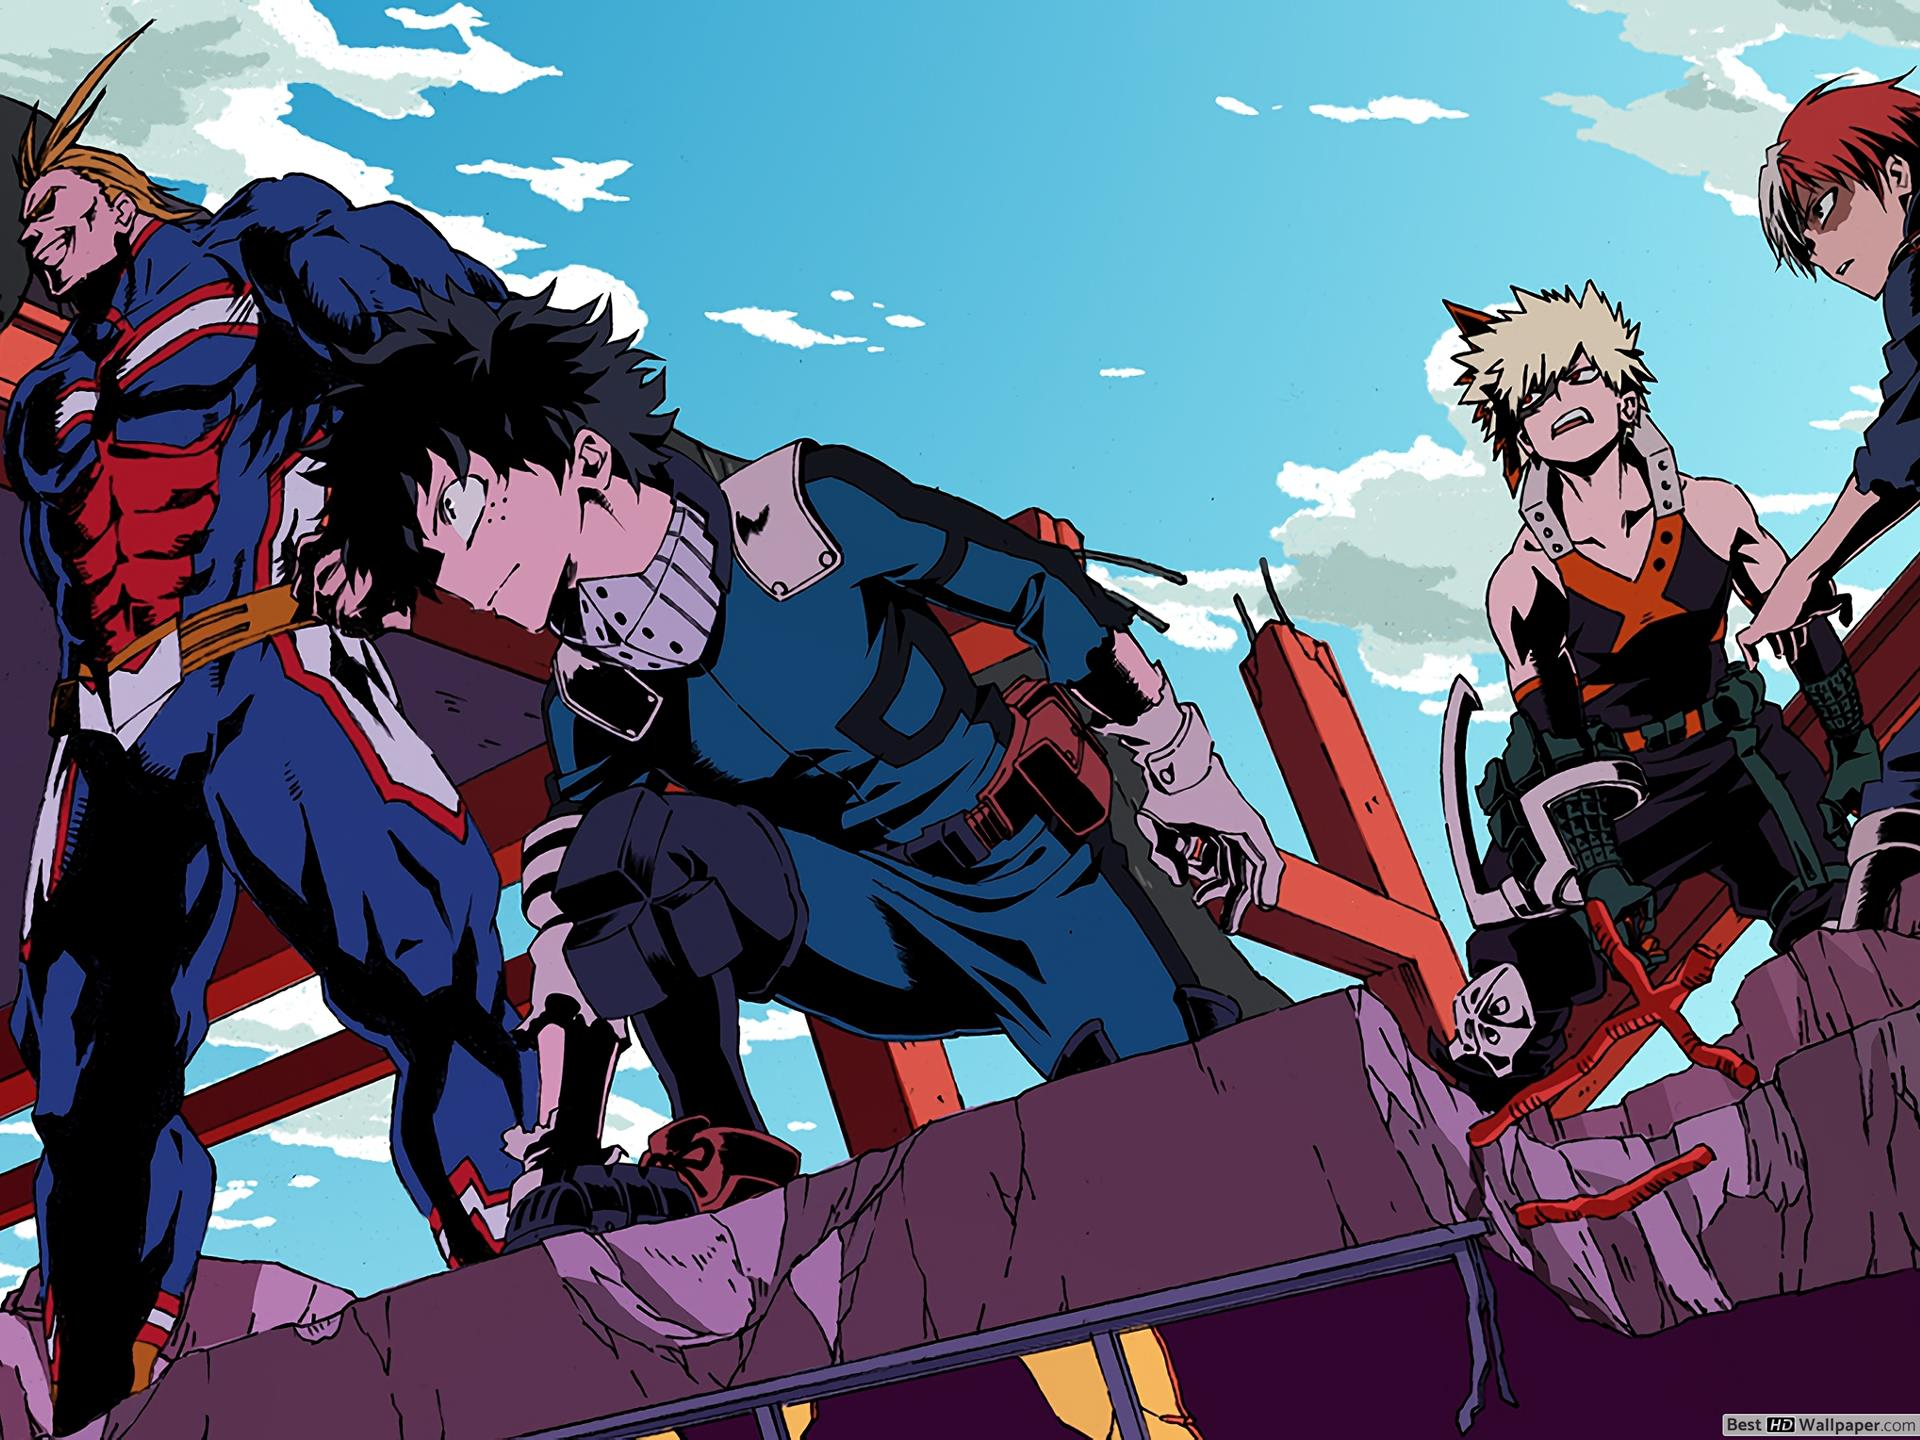 Aesthetic My Hero Academia Wallpapers   Top Aesthetic My Hero 1920x1440